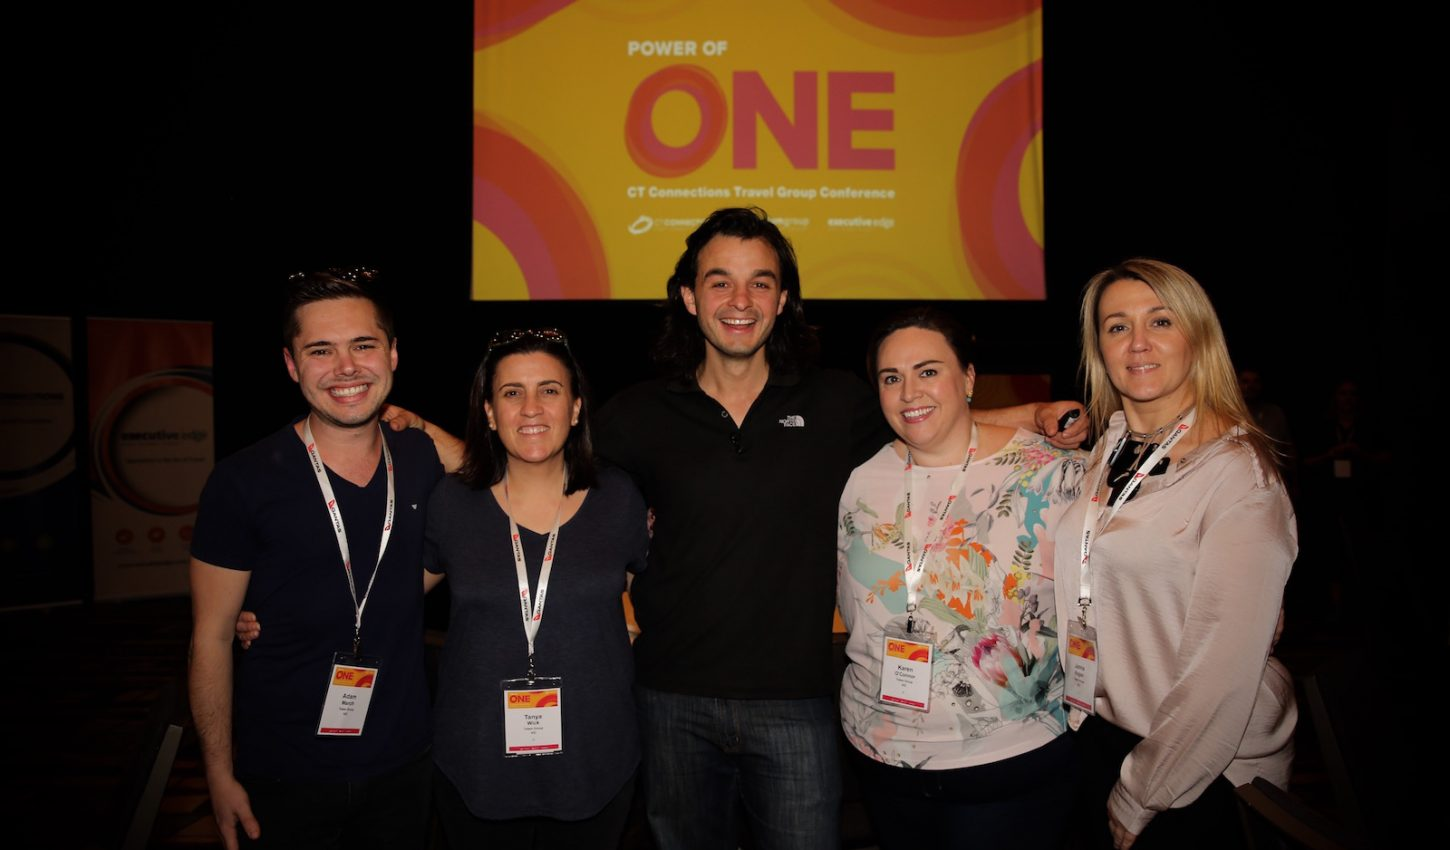 Power of One: James Castrission with the team from Totem Group at a CT Connections Travel Group conference recently.